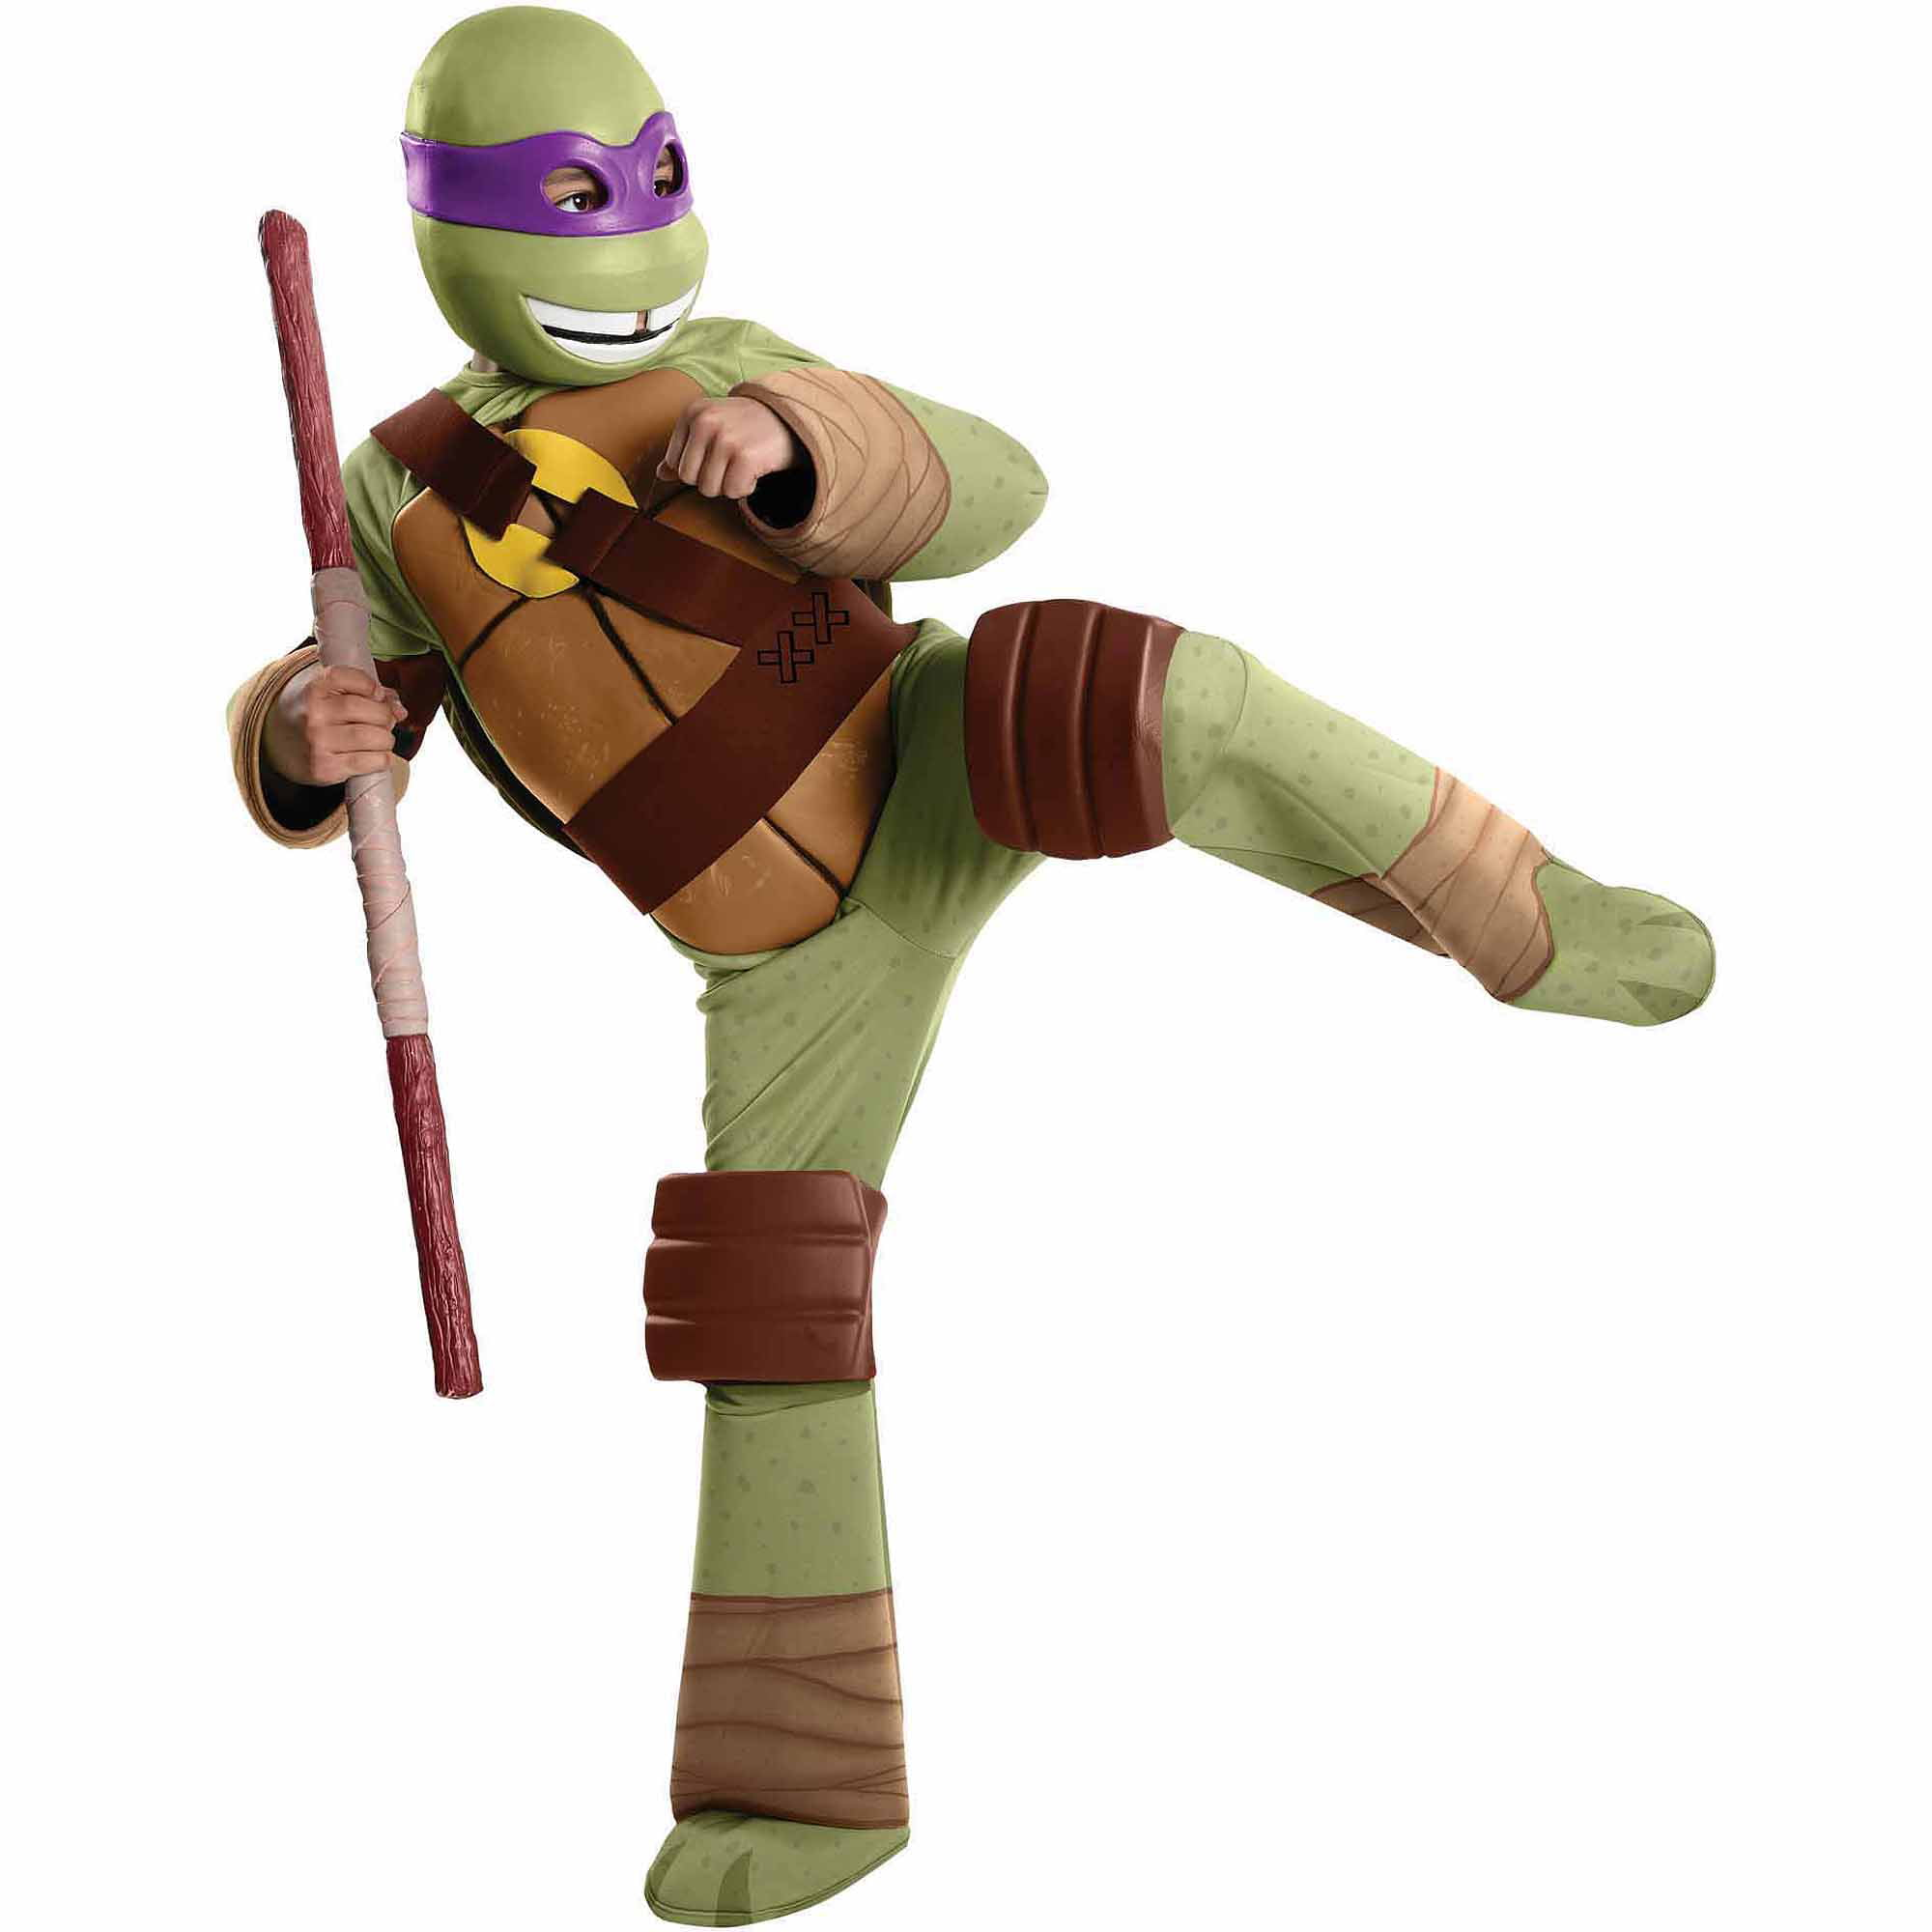 Ninja turtle costumes teenage mutant ninja turtles donatello deluxe child halloween costume solutioingenieria Image collections